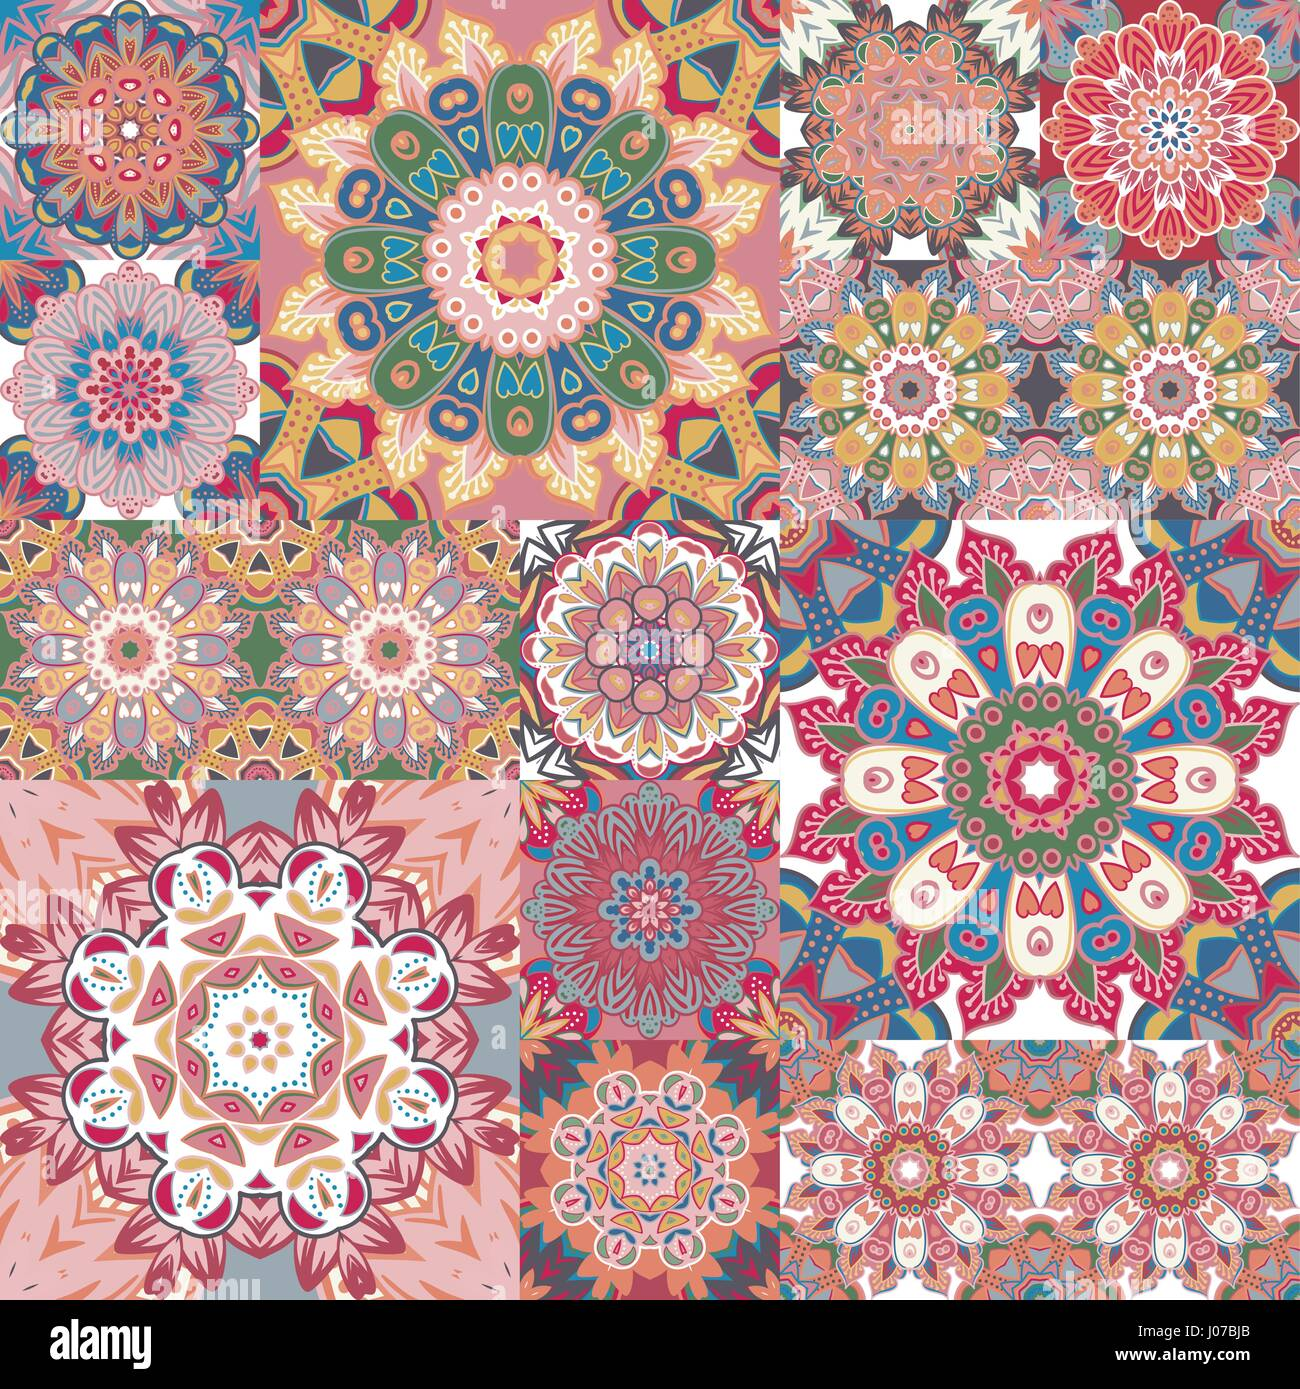 pastel vintage seamless pattern with floral and mandala elements hand stock vector art. Black Bedroom Furniture Sets. Home Design Ideas